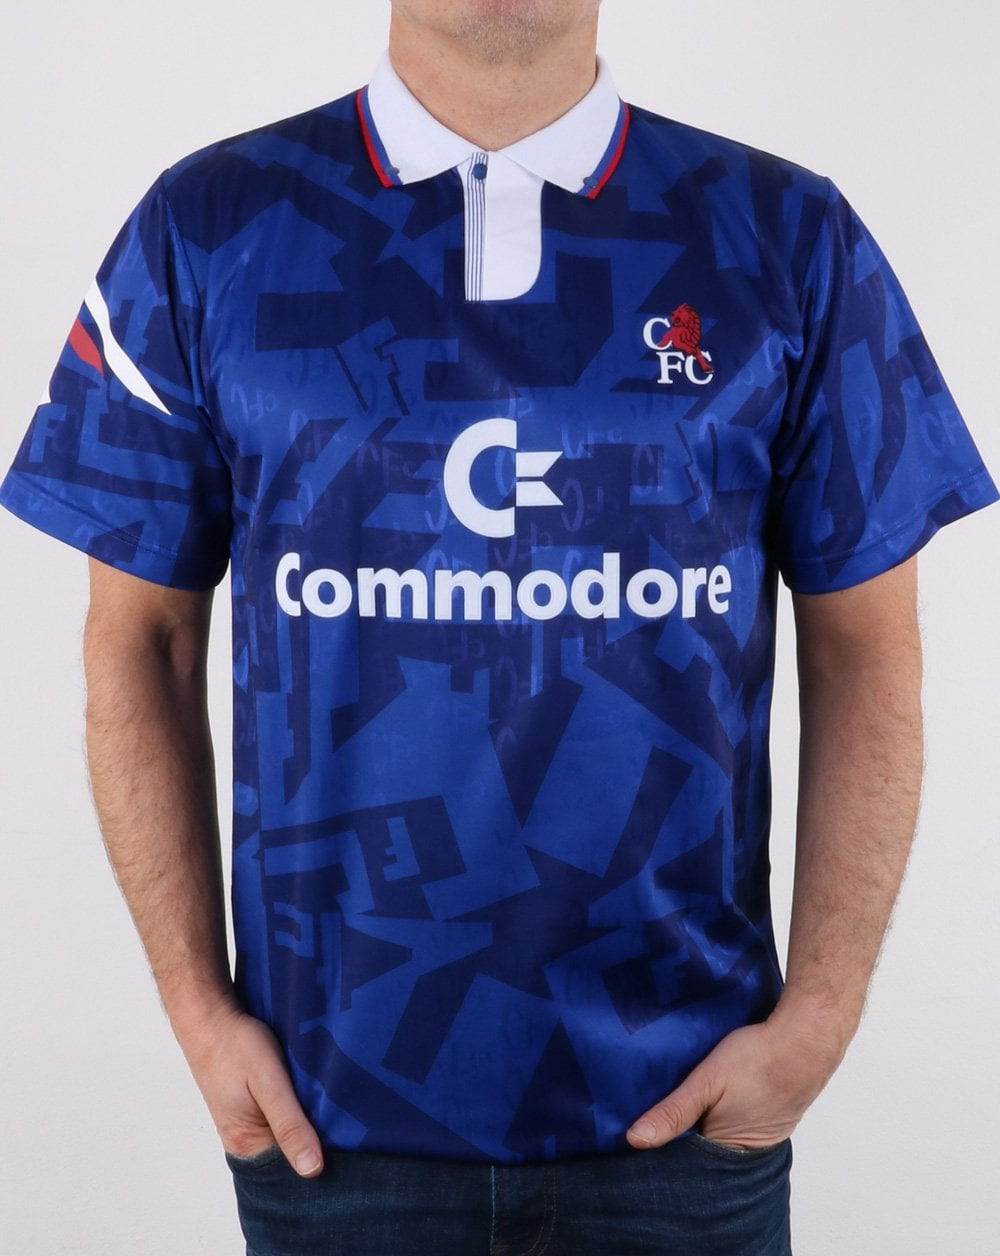 hot sale online 82fd1 caed2 Buy Retro Chelsea Shirts – EDGE Engineering and Consulting ...